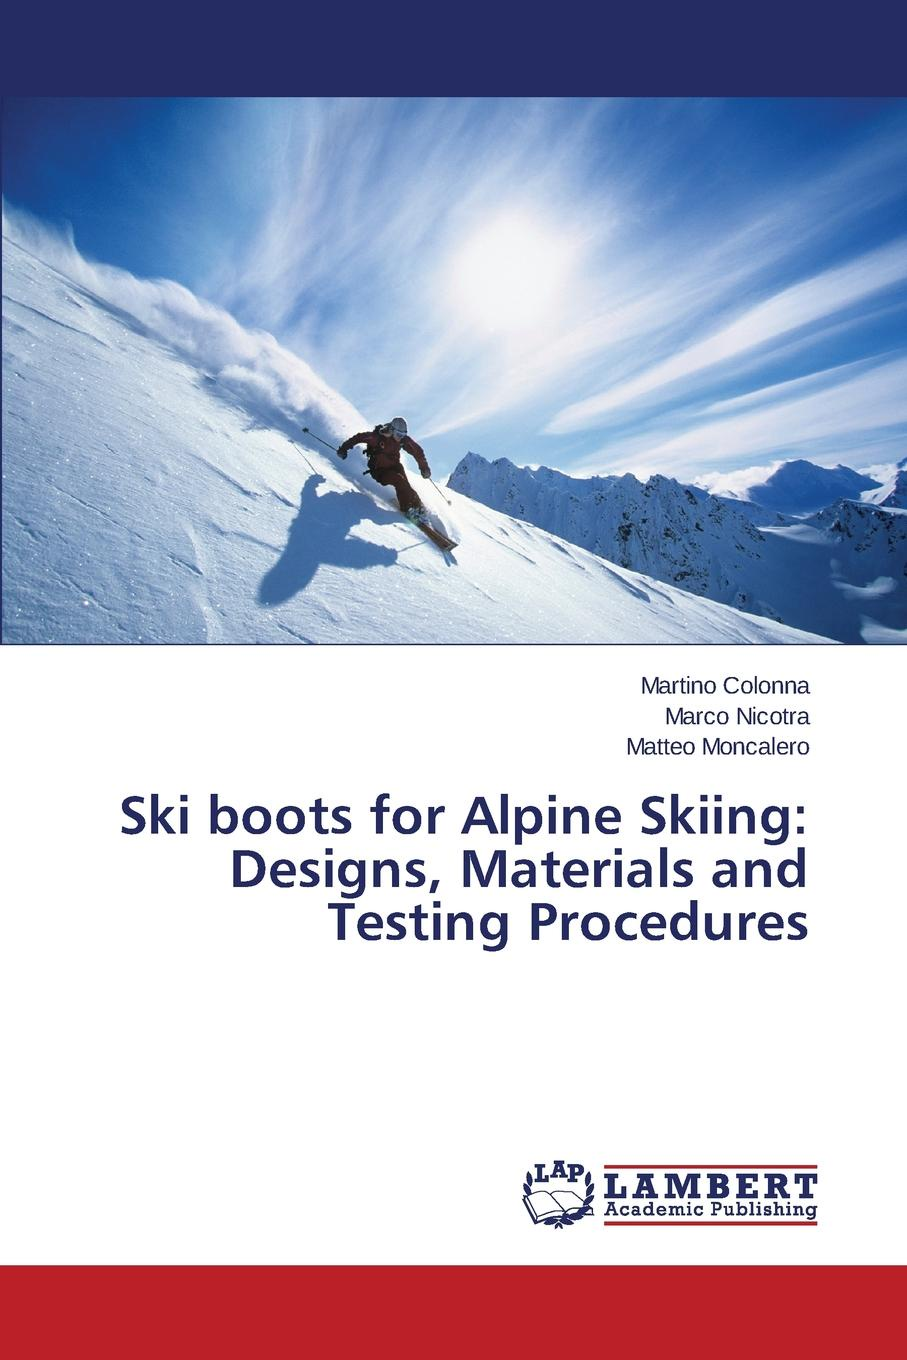 Colonna Martino, Nicotra Marco, Moncalero Matteo Ski boots for Alpine Skiing. Designs, Materials and Testing Procedures trendy women s short boots with chunky heel and tassels design